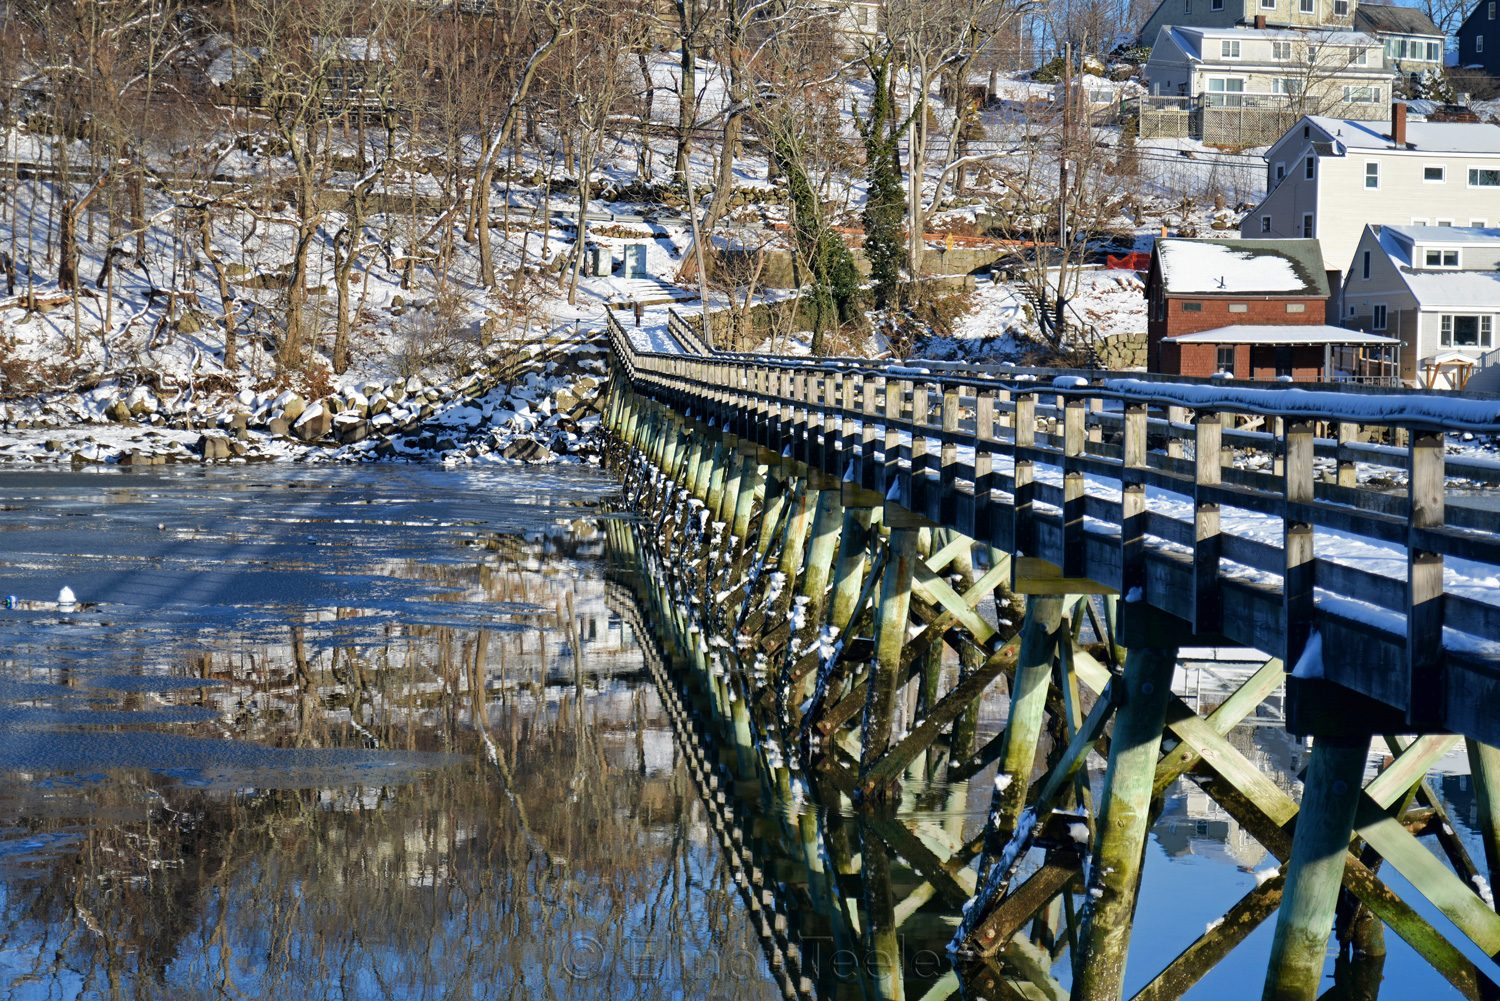 Footbridge - Winter Reflections (Landscape)